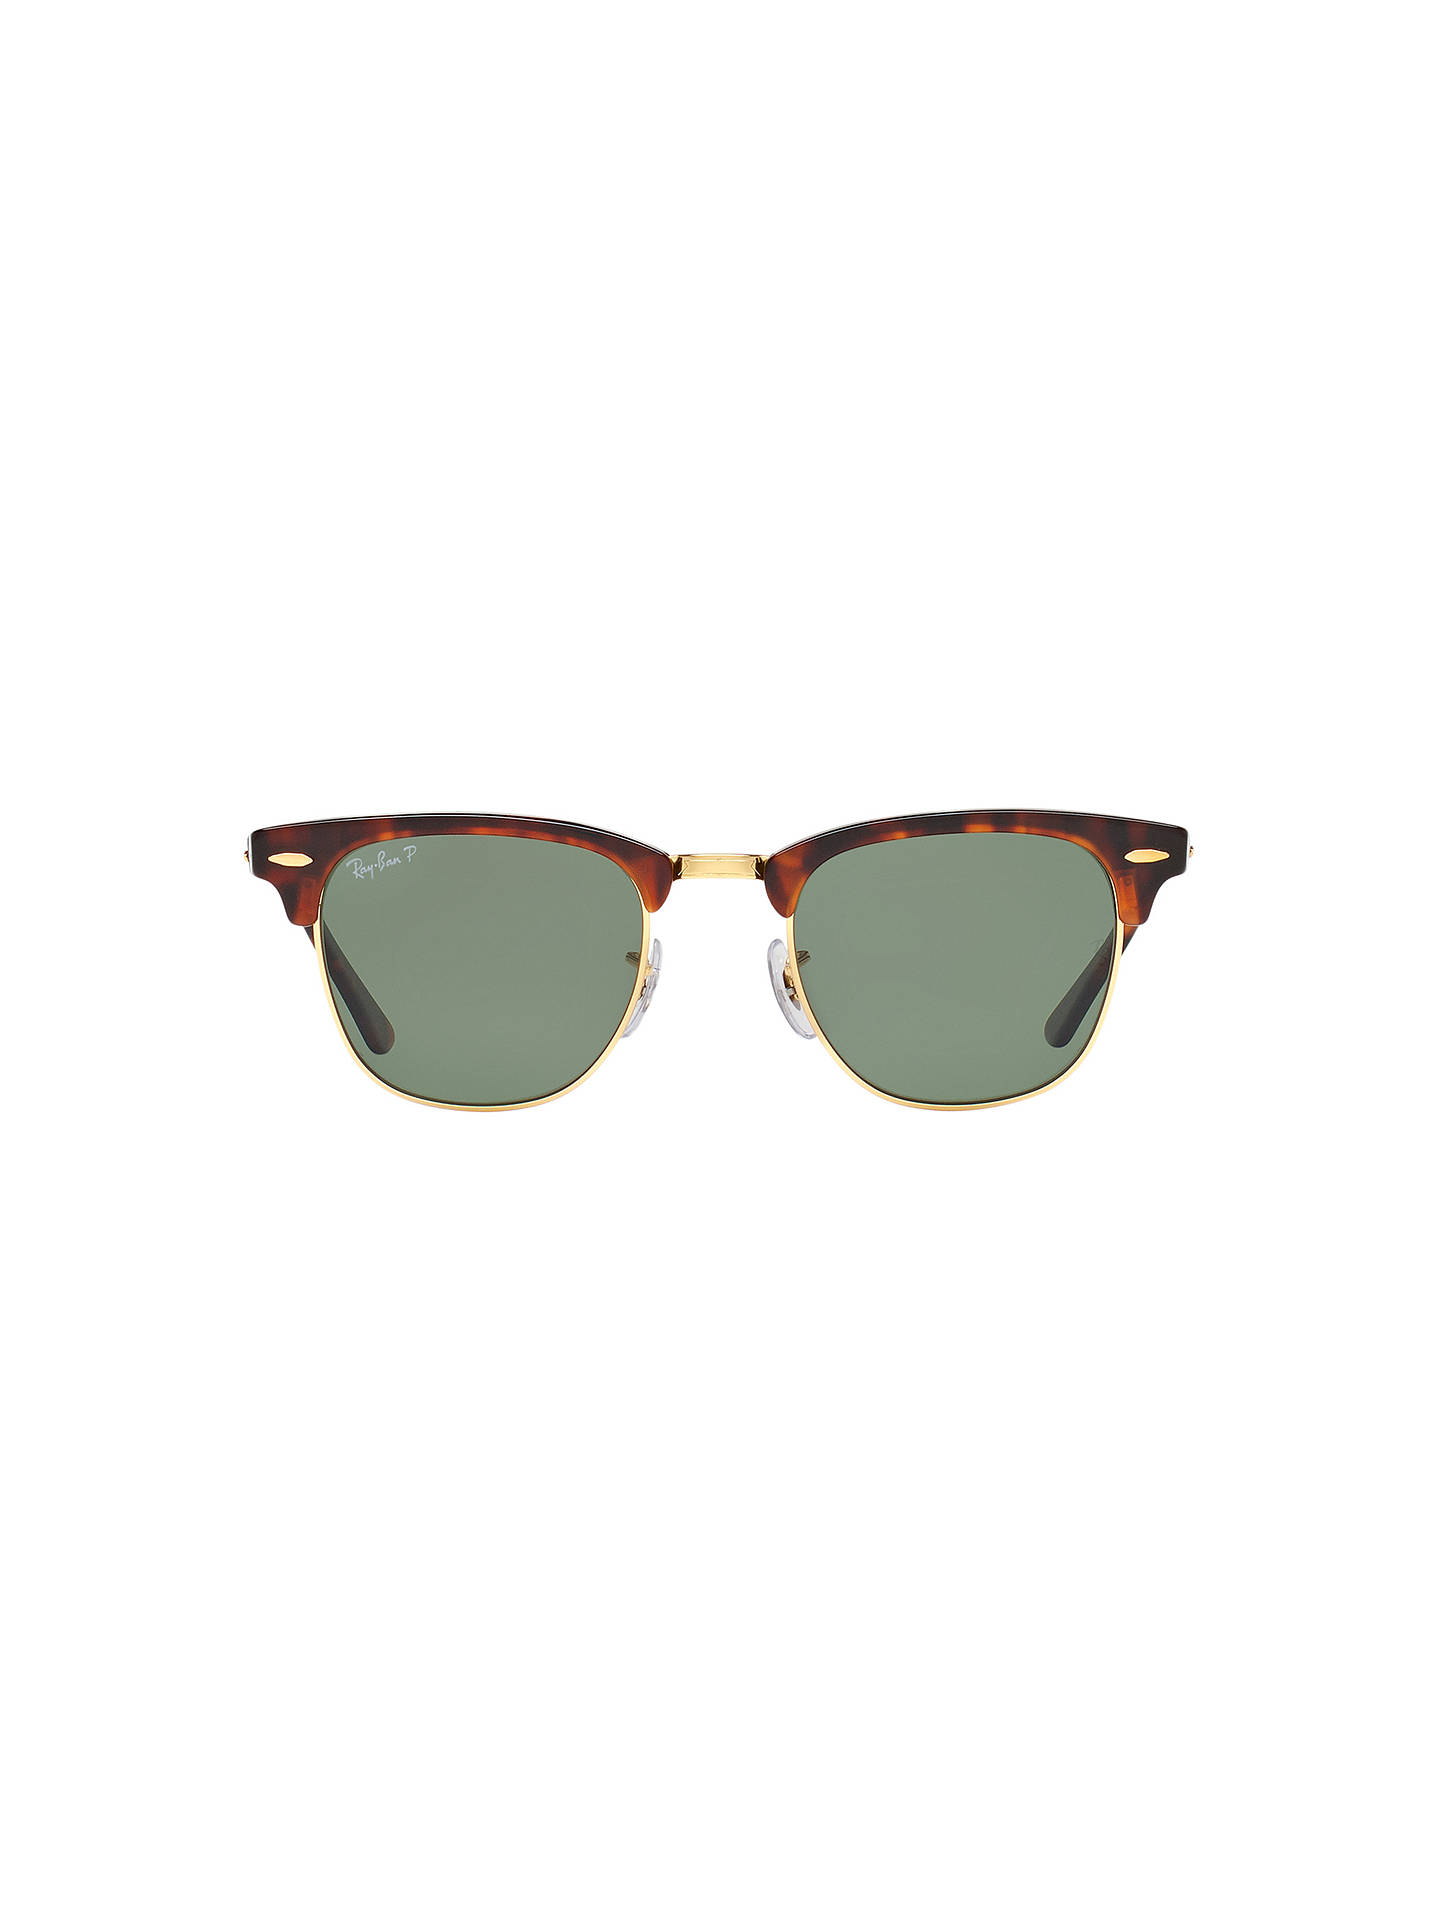 BuyRay-Ban RB3016 Men's Polarised Clubmaster Sunglasses, Tortoise/Green Online at johnlewis.com